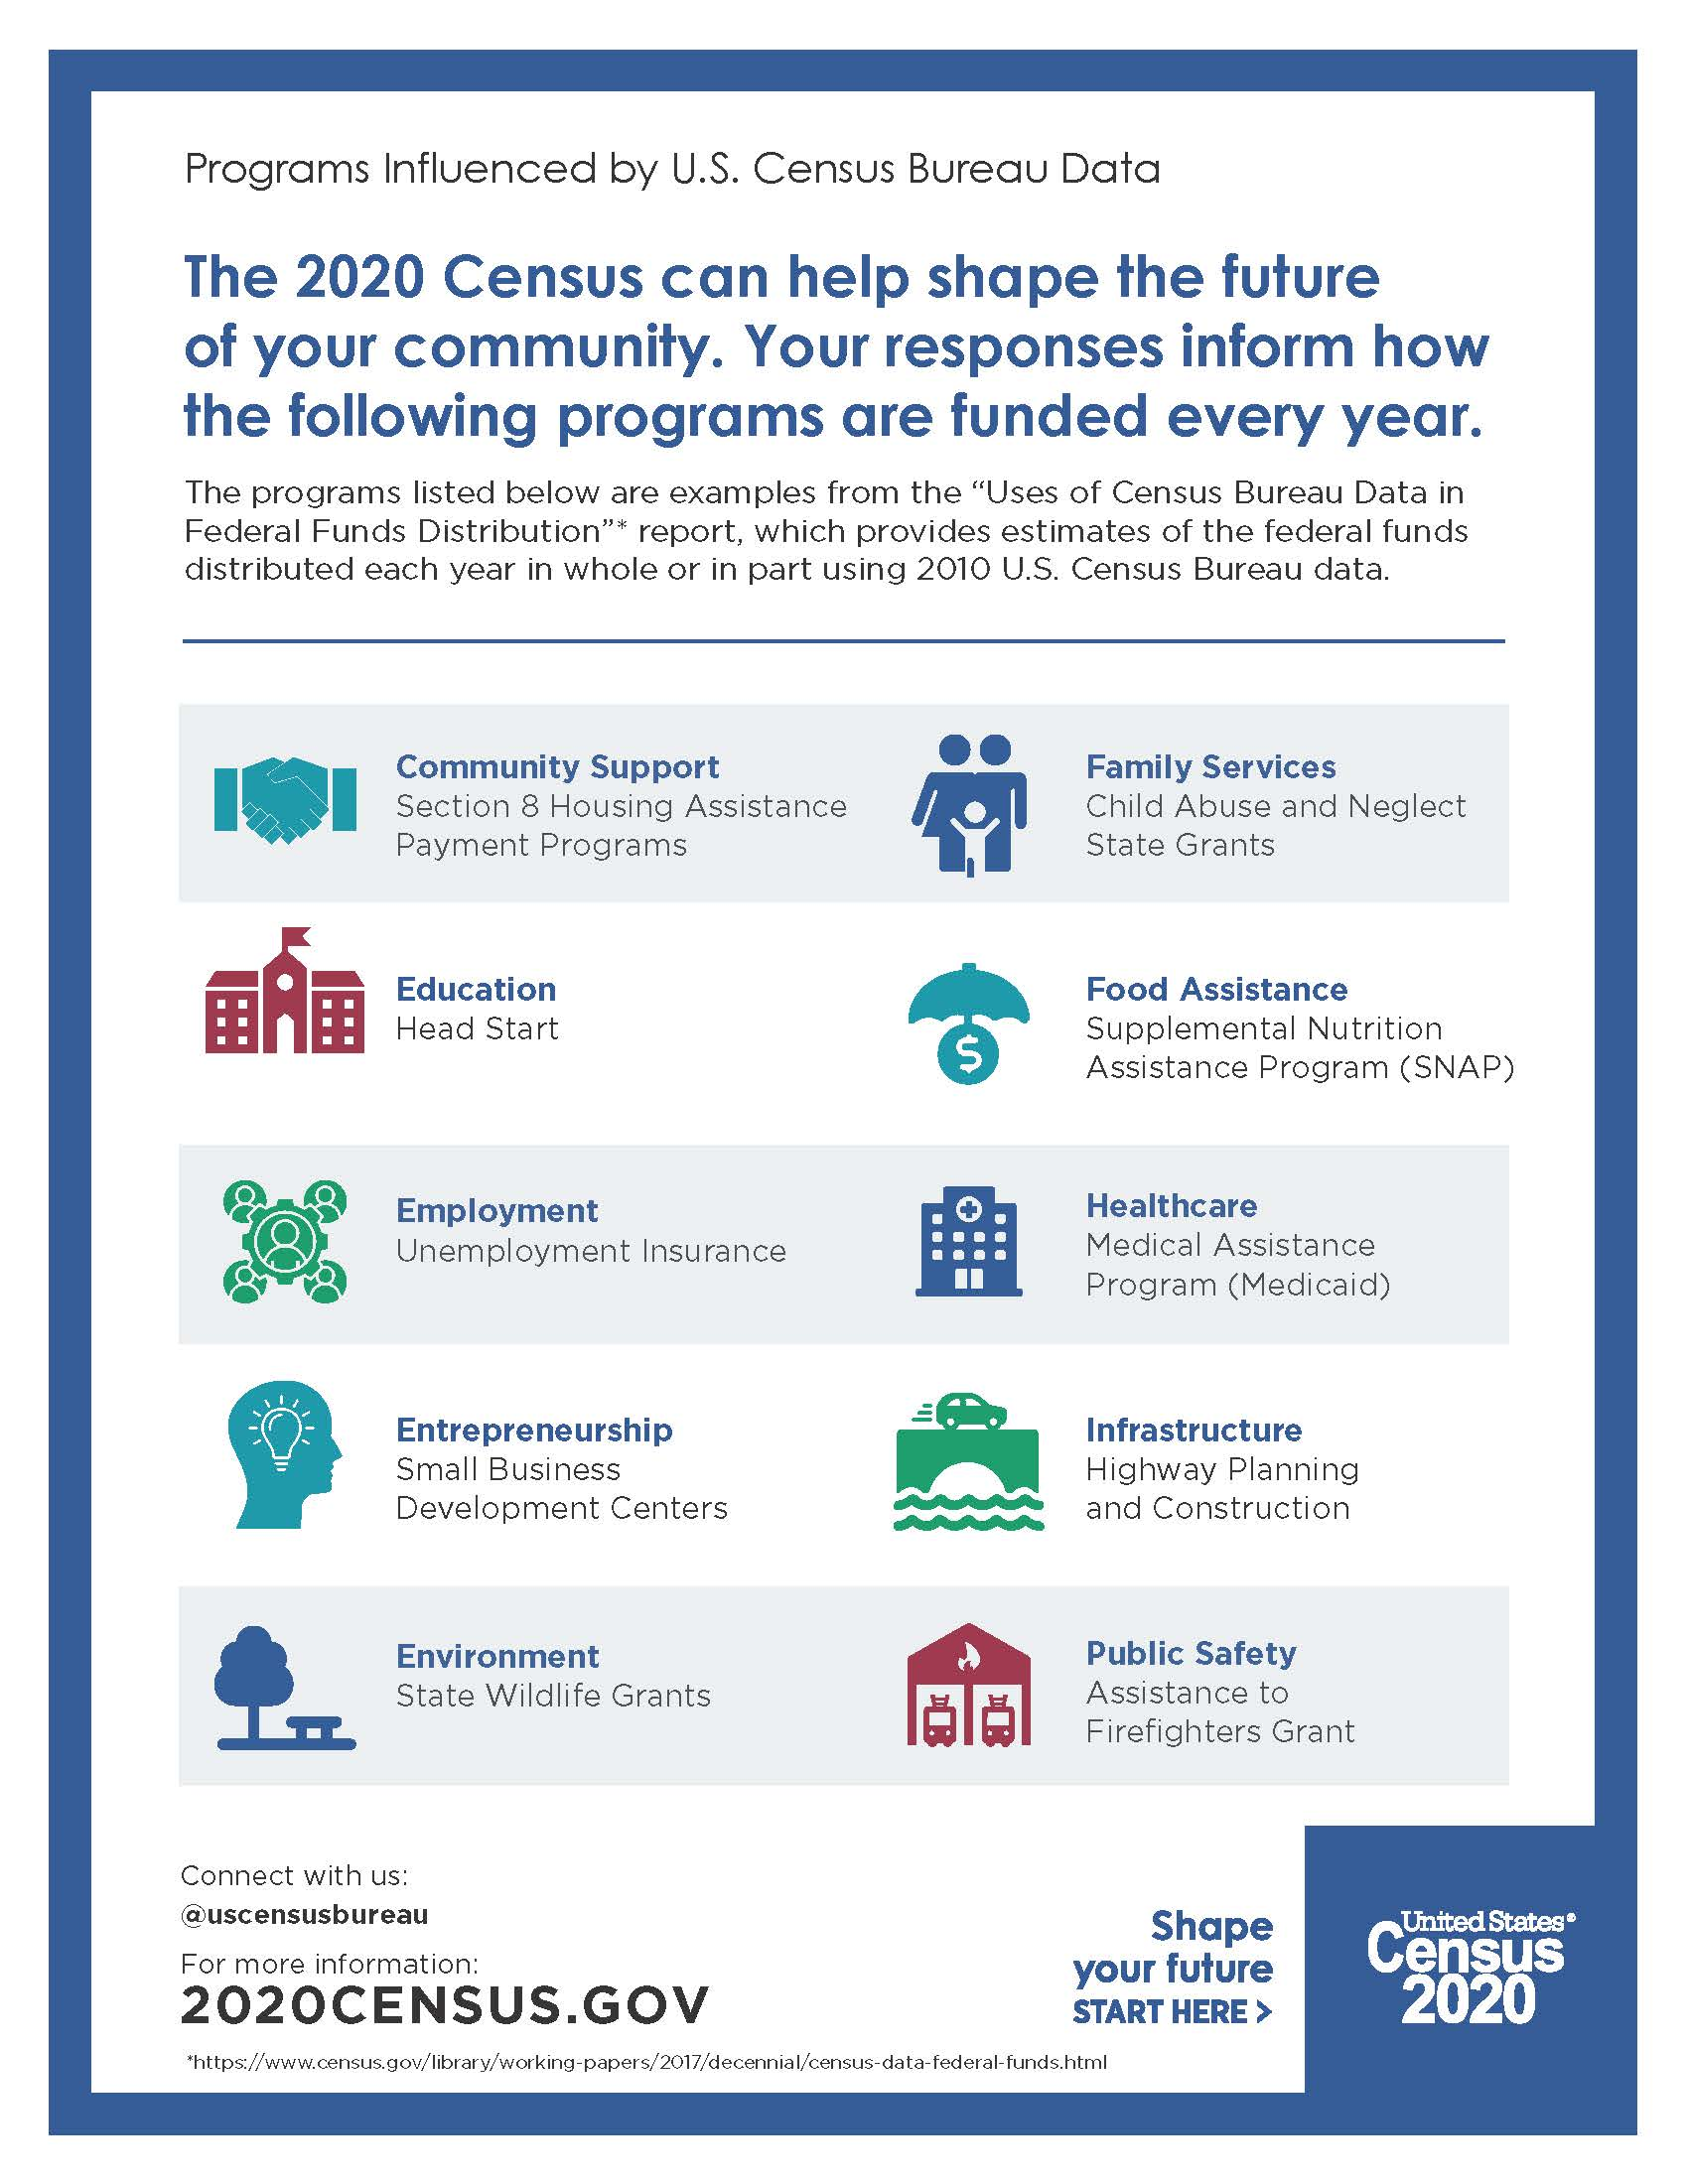 2020_Census_influence